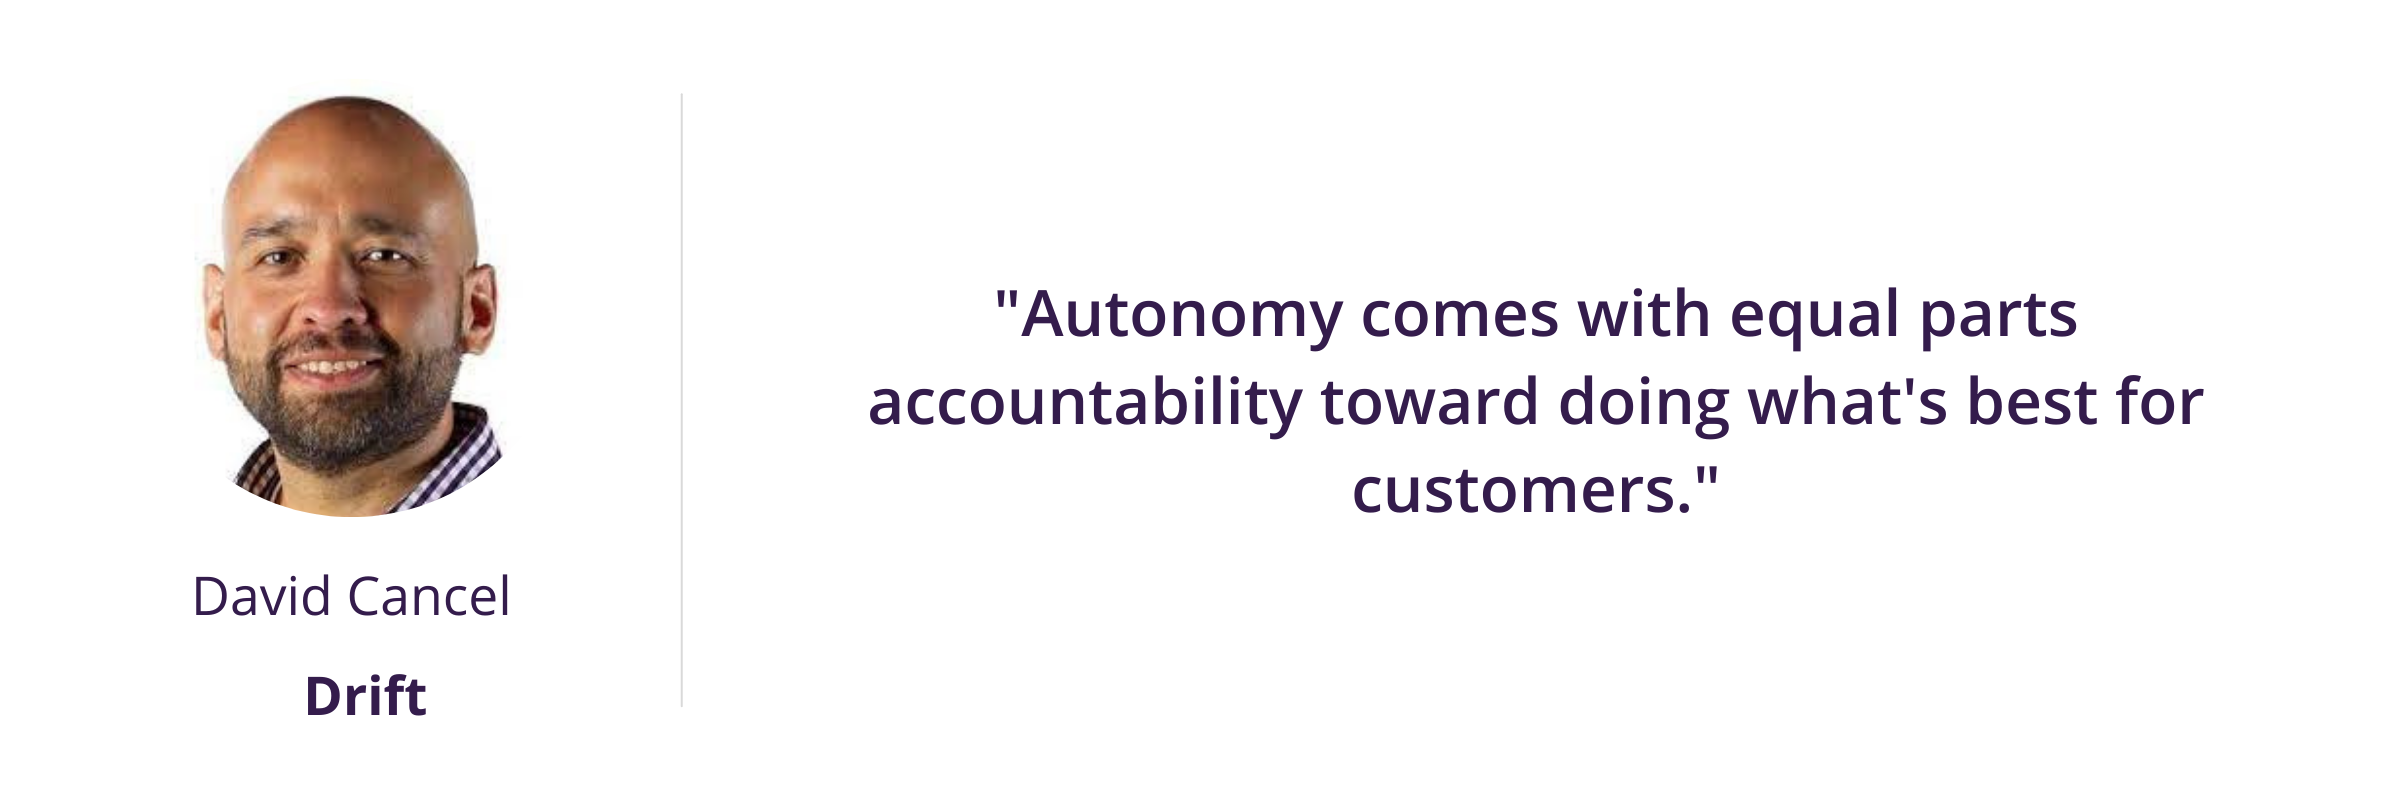 Autonomy comes with equal parts accountability toward doing what's best for customers.